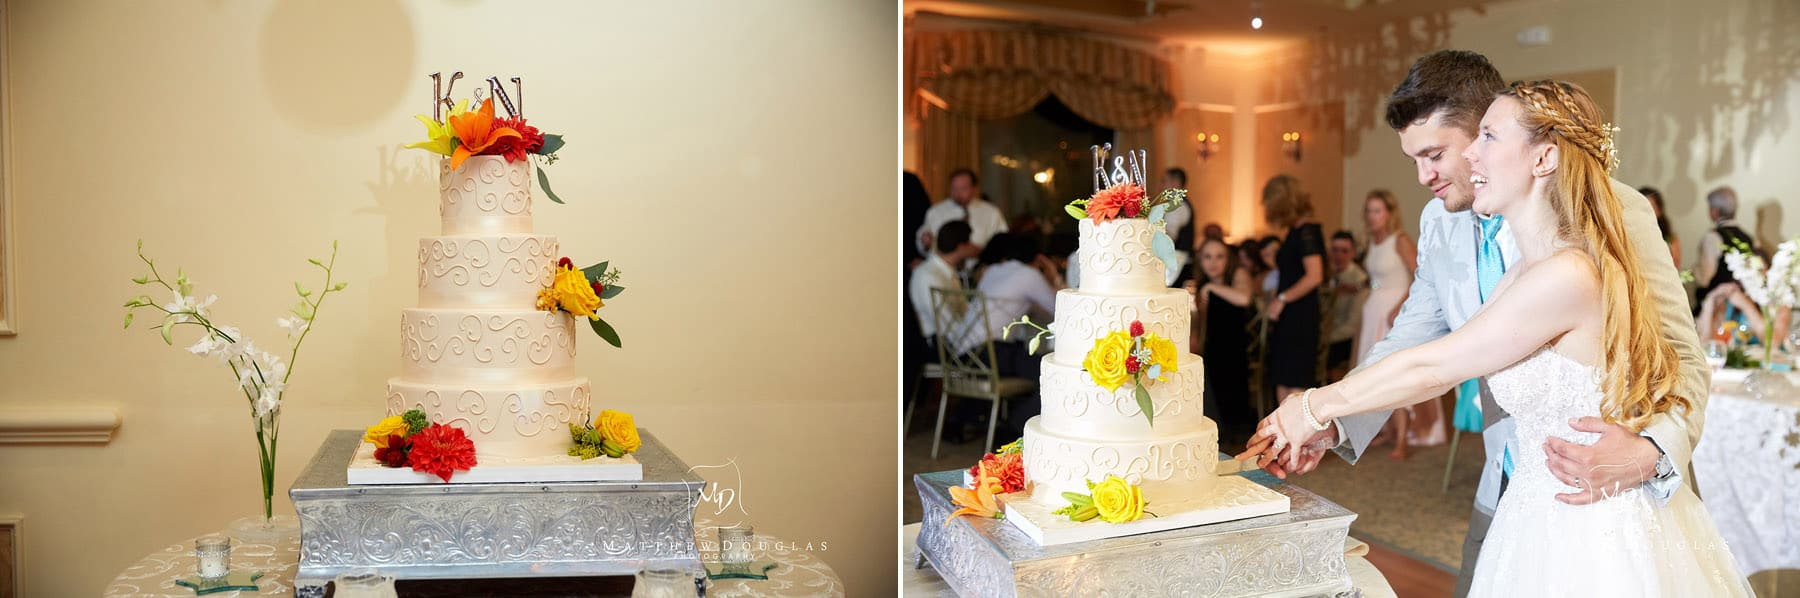 wedding cake cutting at the farmhouse at the grand colonial